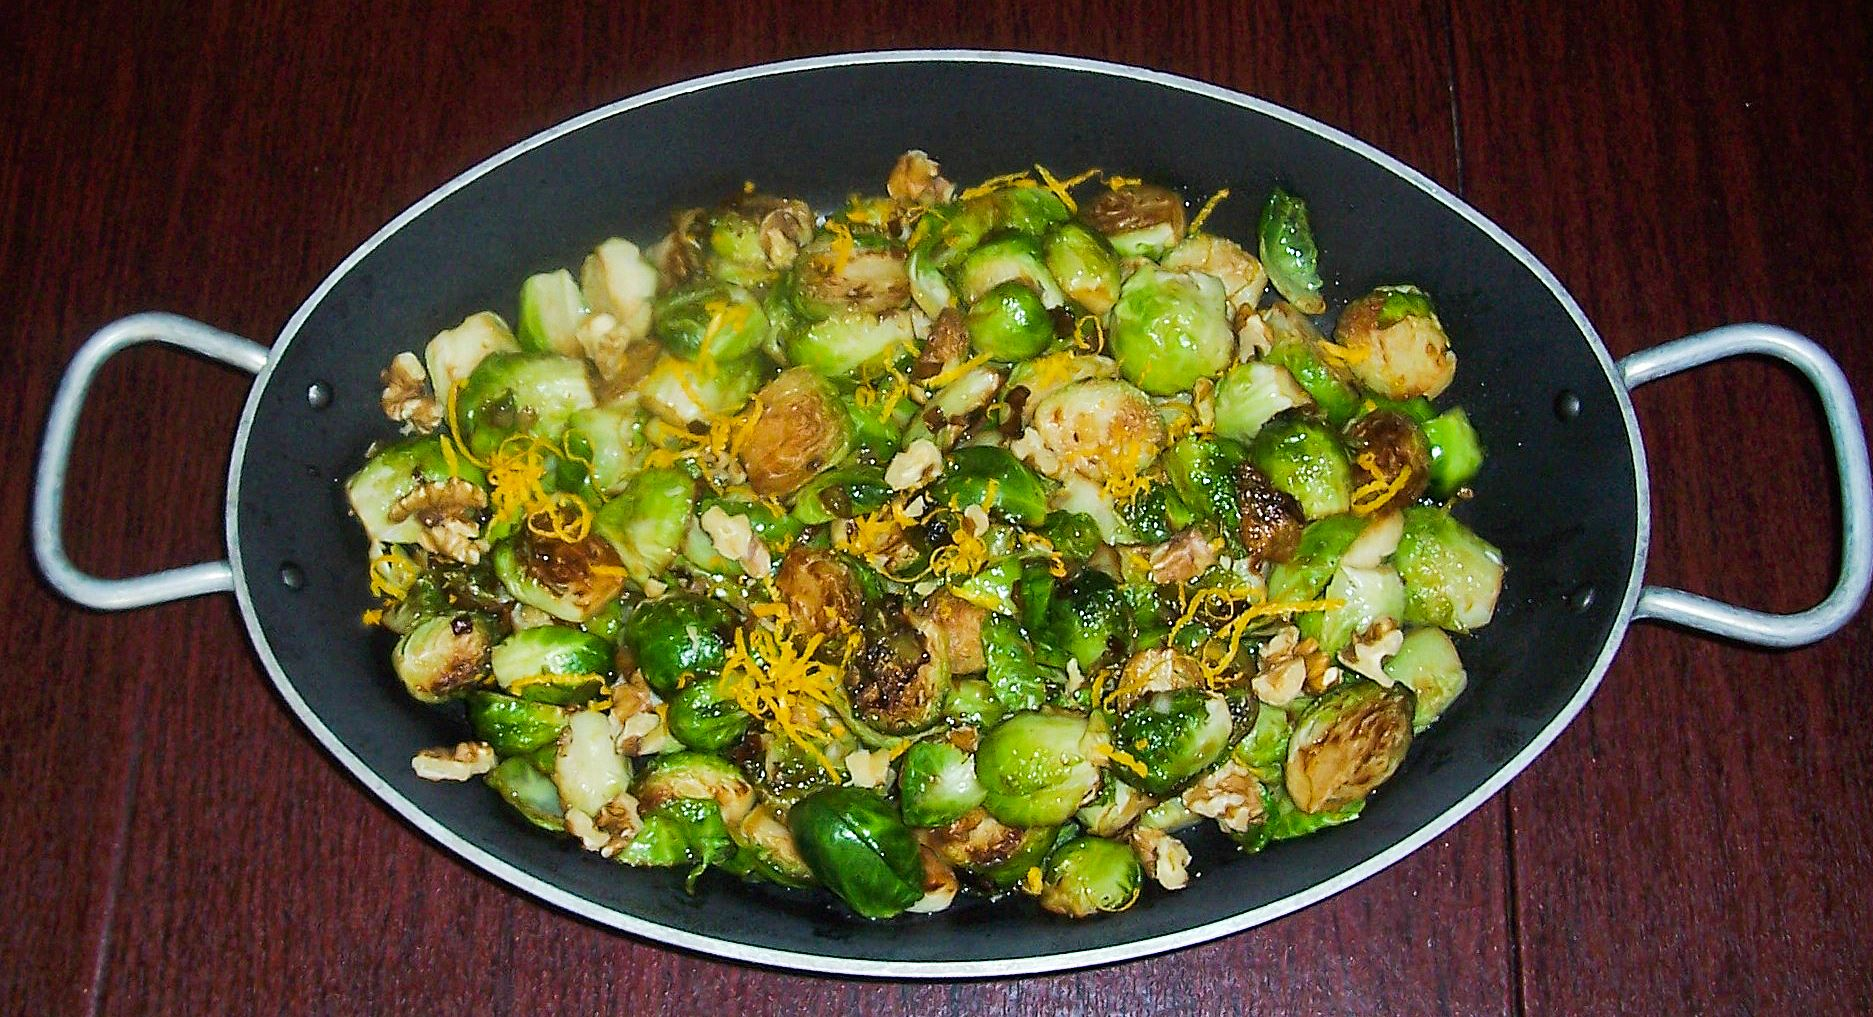 20140714rbbrusselsfood Sauteed Brussels Sprouts with Orange and Walnut.